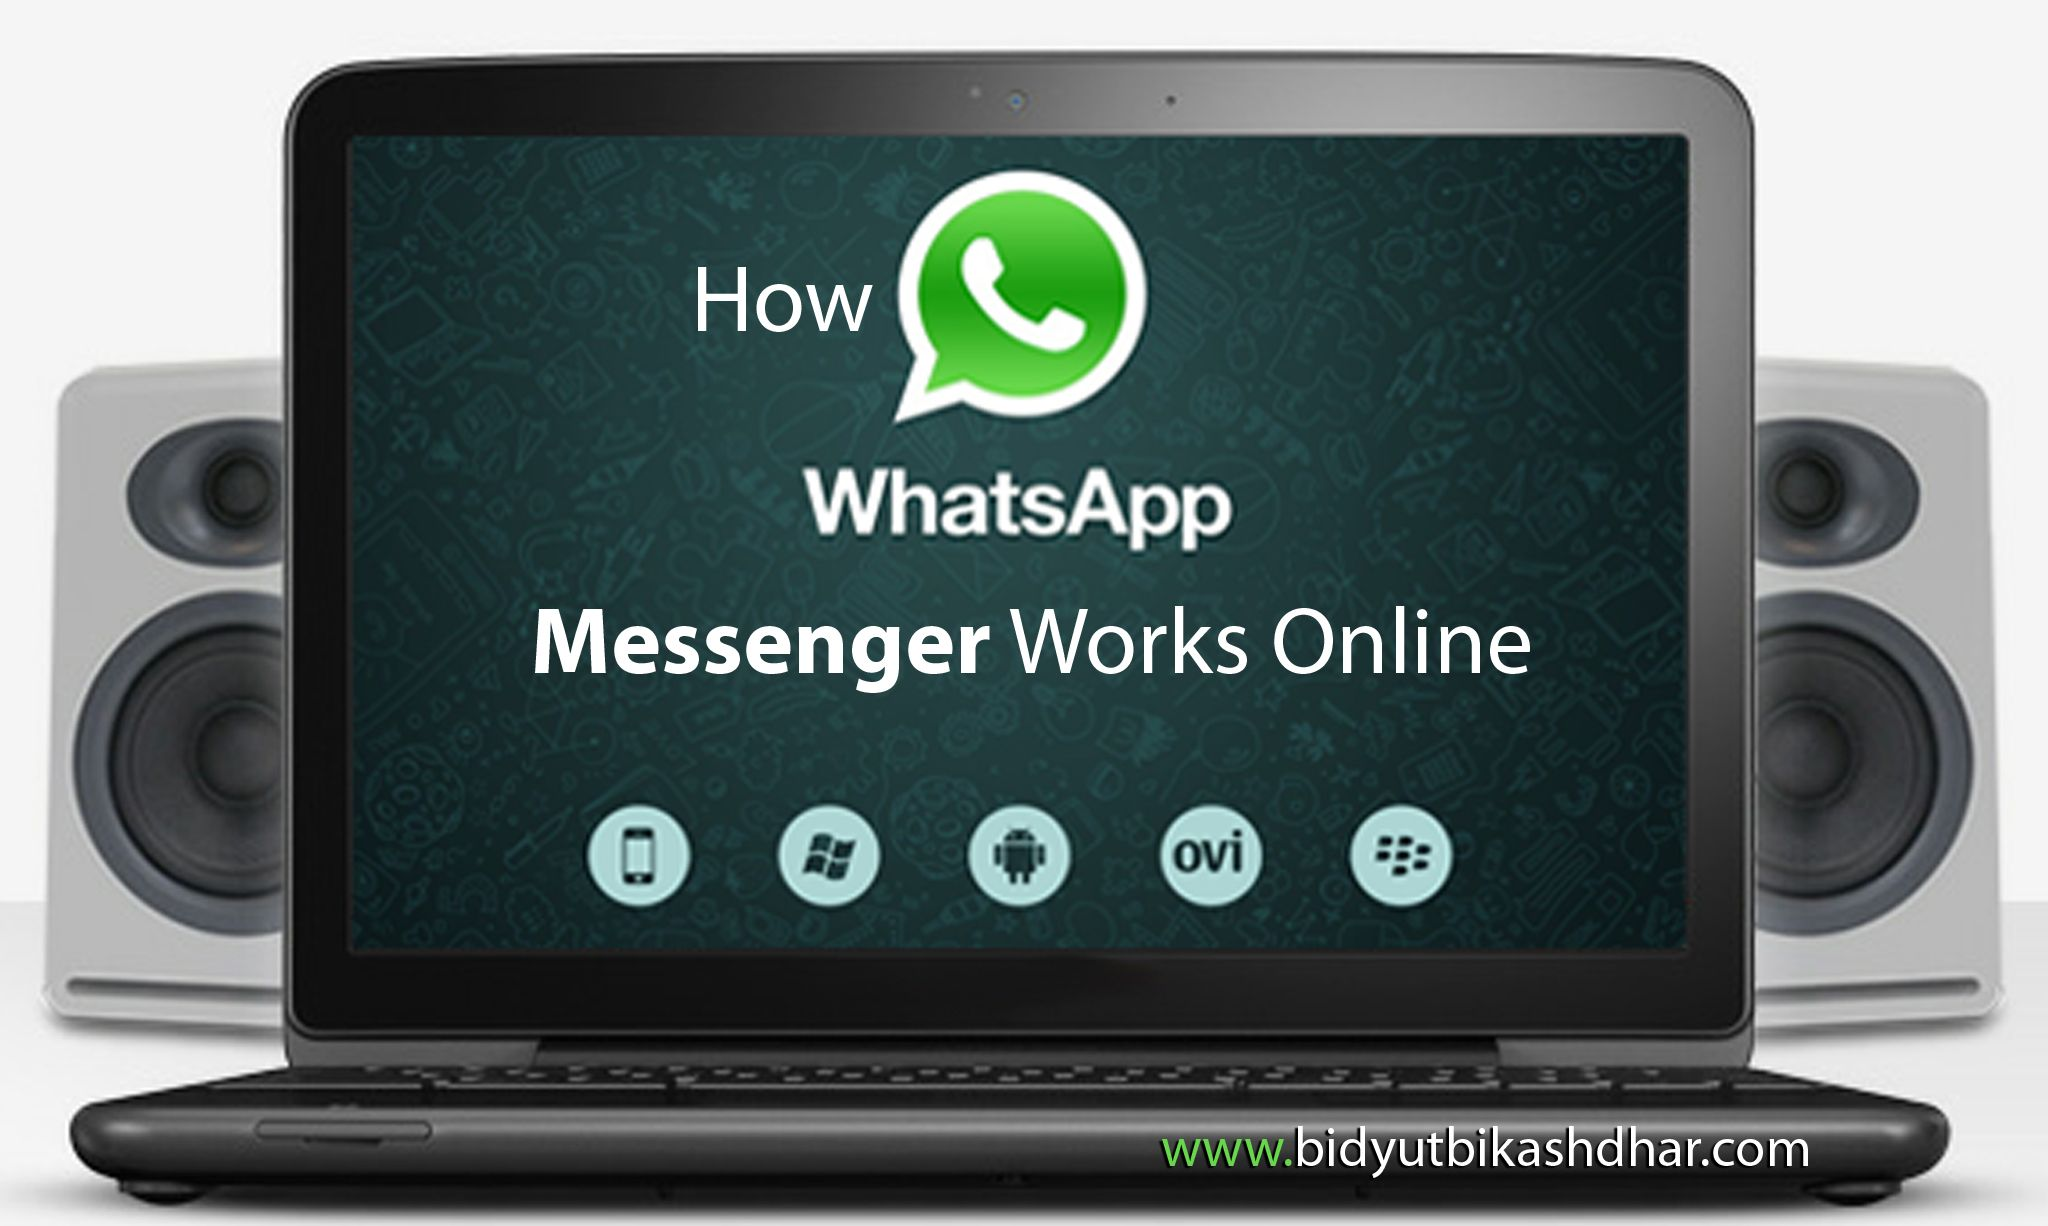 How WhatsApp Messenger Works Online